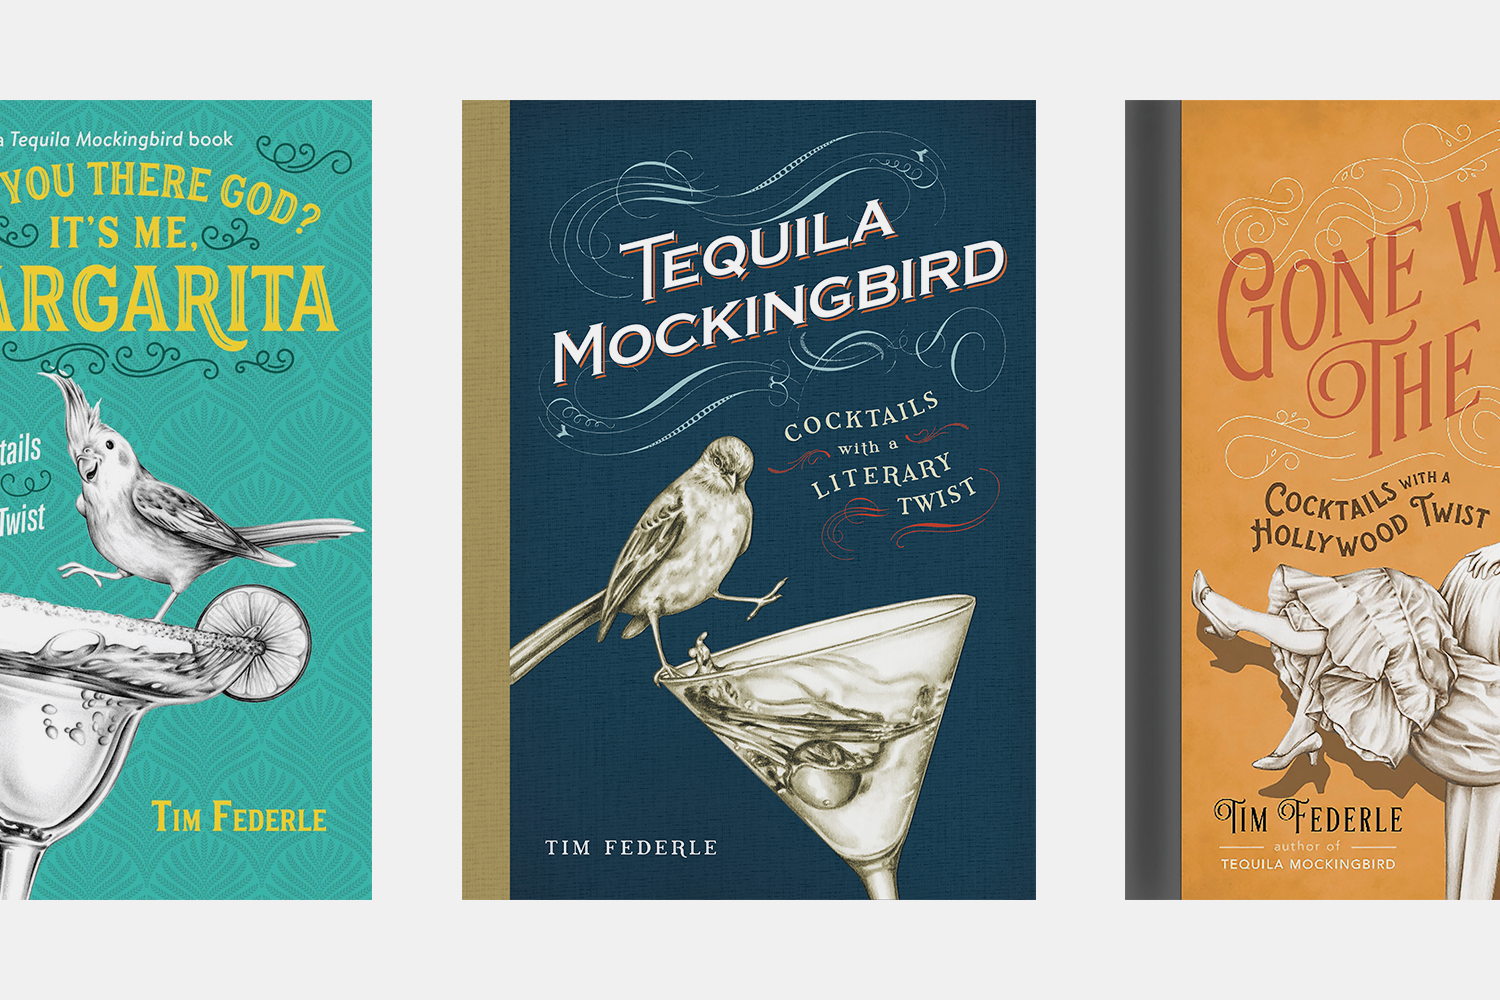 tequila mockingbird literary cocktails books